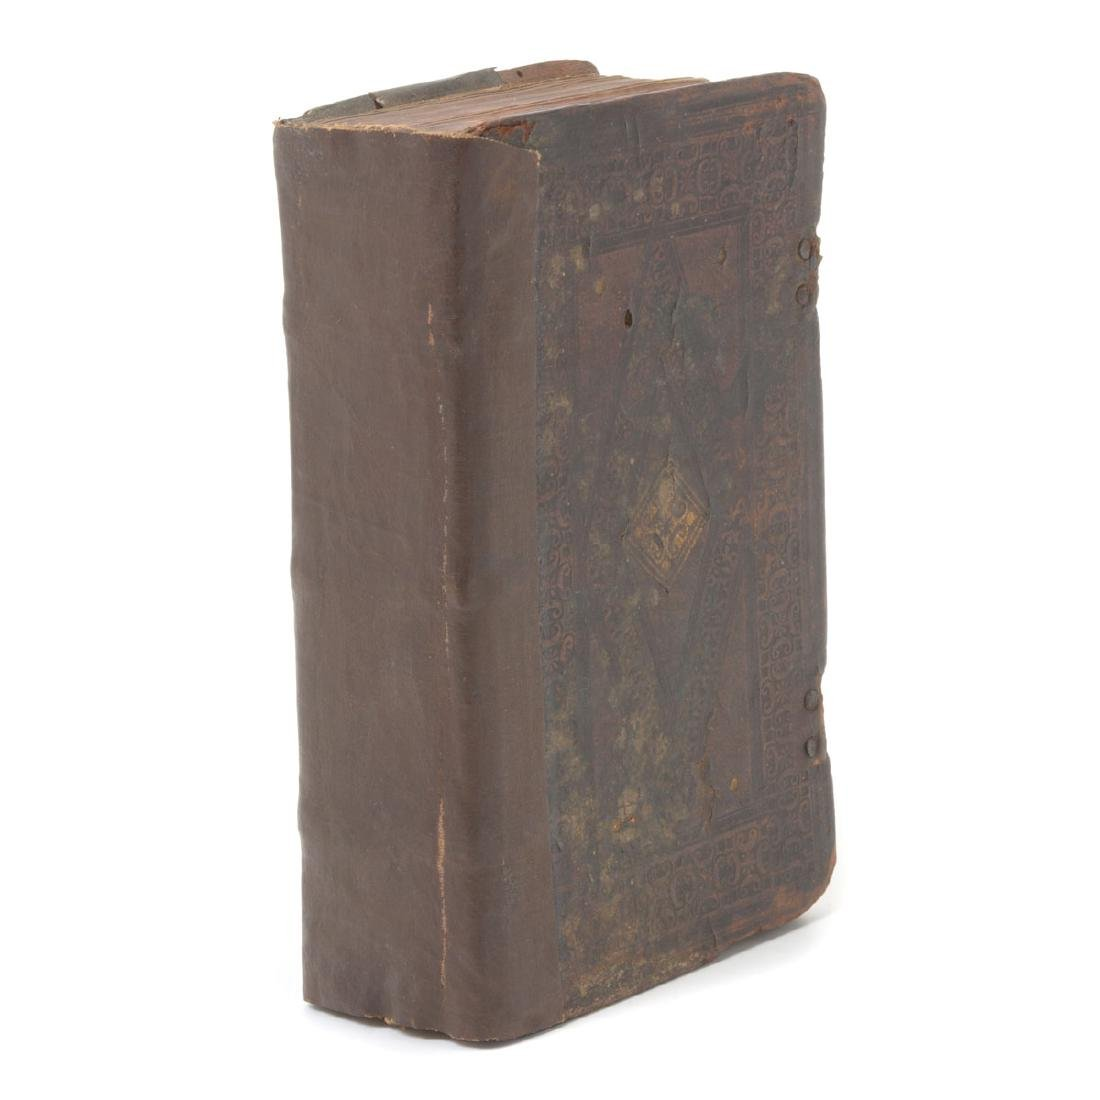 Tooled Leather Bound Volume of Cicero Letters in Latin